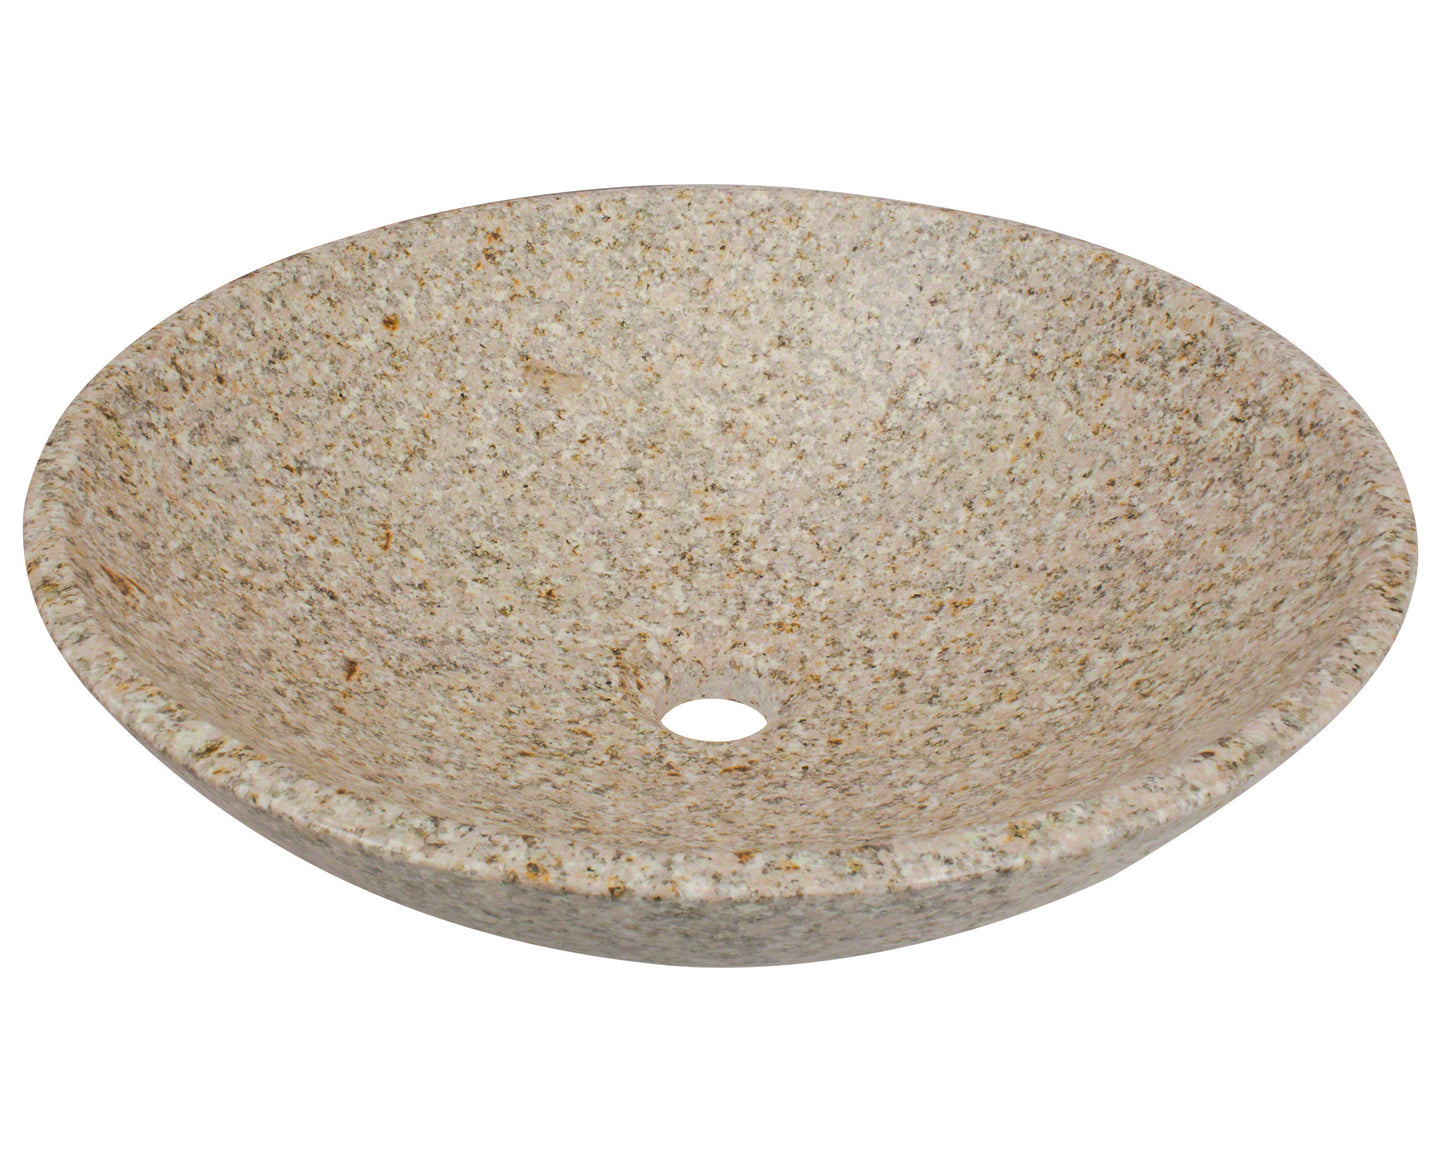 P058TN Granite Vessel Sink by Polaris